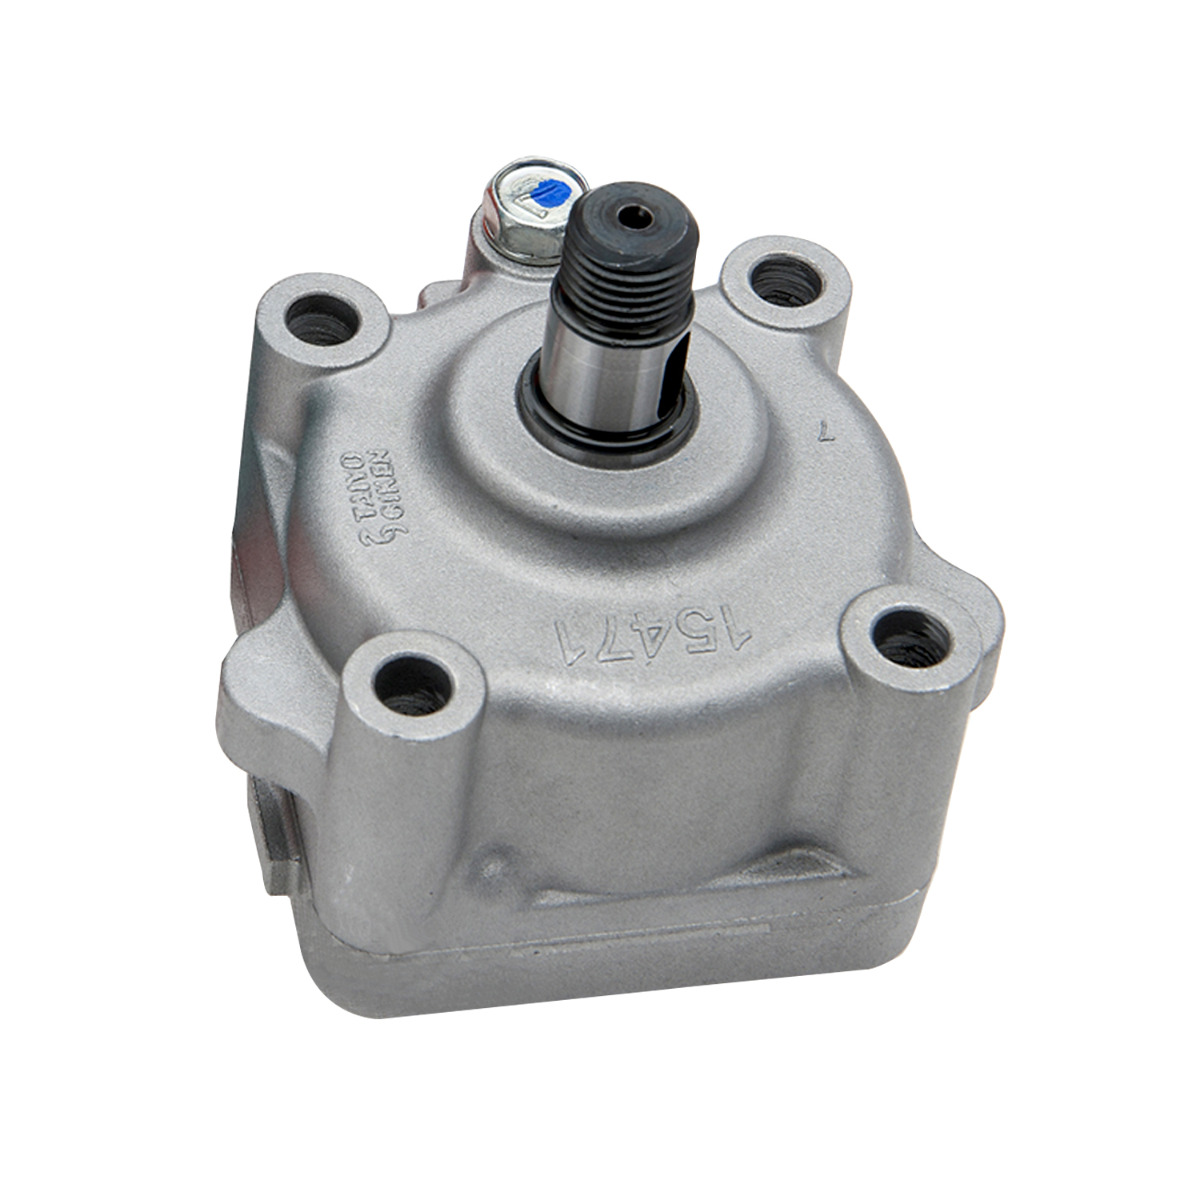 Oil Pump 15471-35012 Compatible with Bobcat Skid Steer Loader S130 S150 S160 S175 S185 S205 S510 S530 T110 T140 T180 T190 643 645 733 743 743B 743DS 751 753 763 773